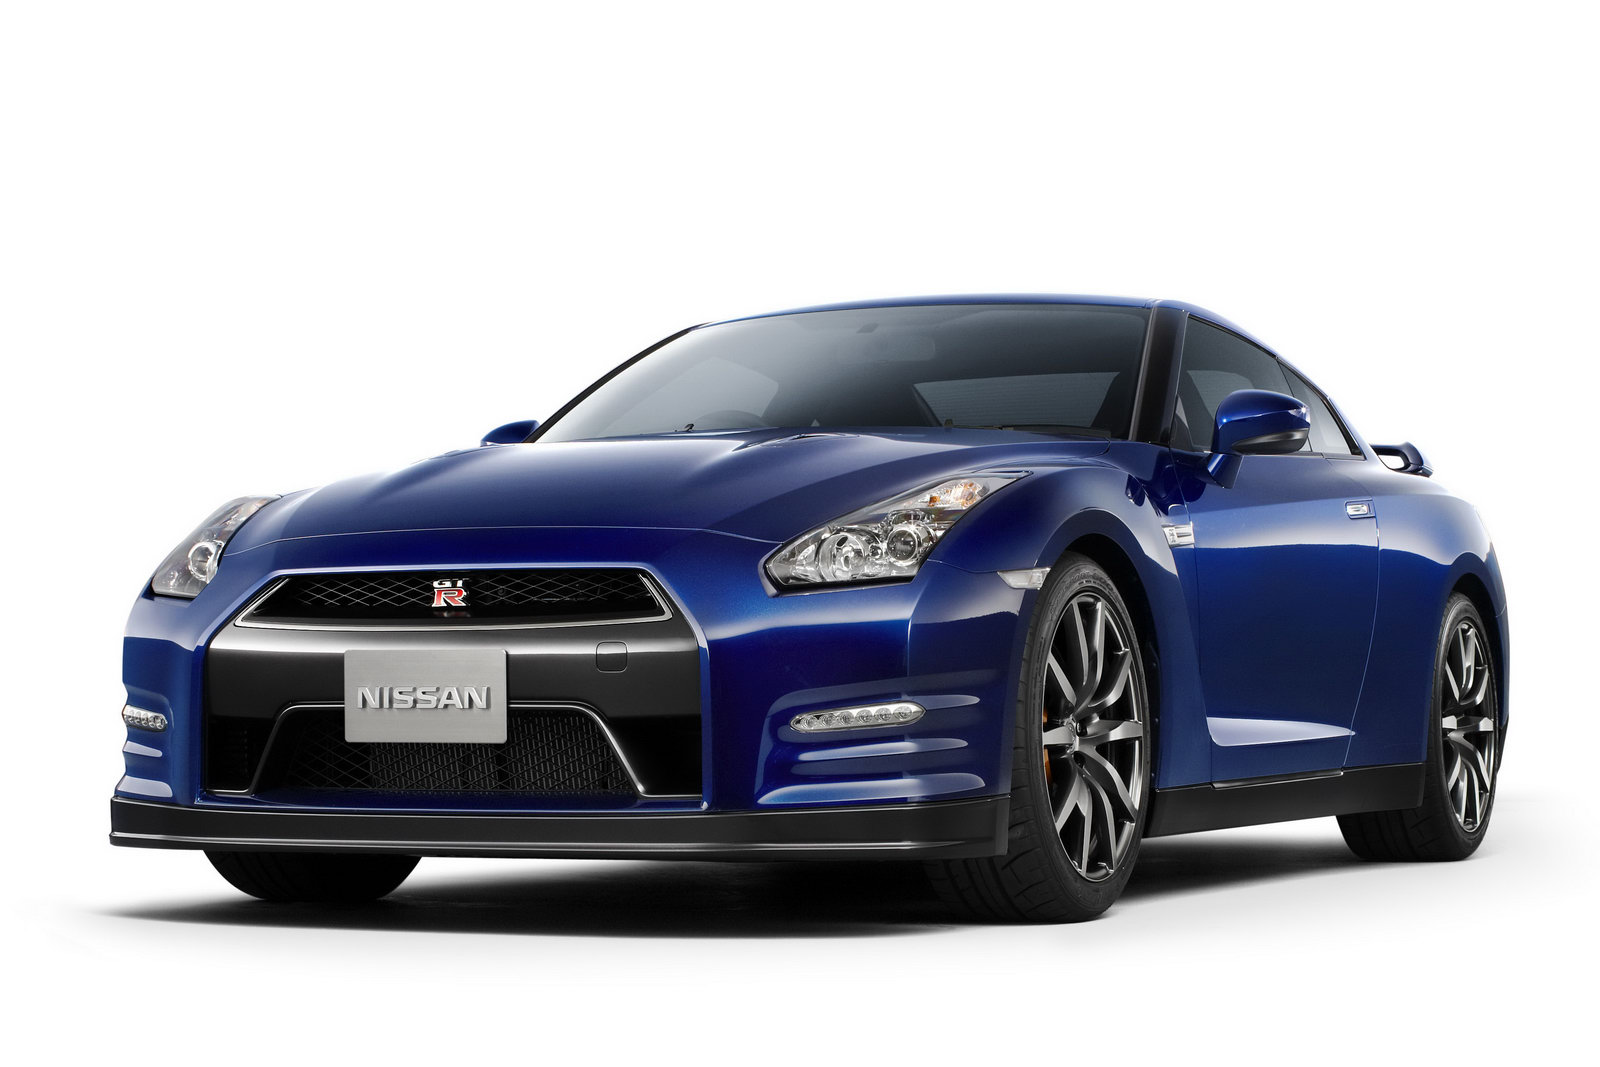 2012 Nissan GT-R Wallpaper Free For Iphone Wallpaper